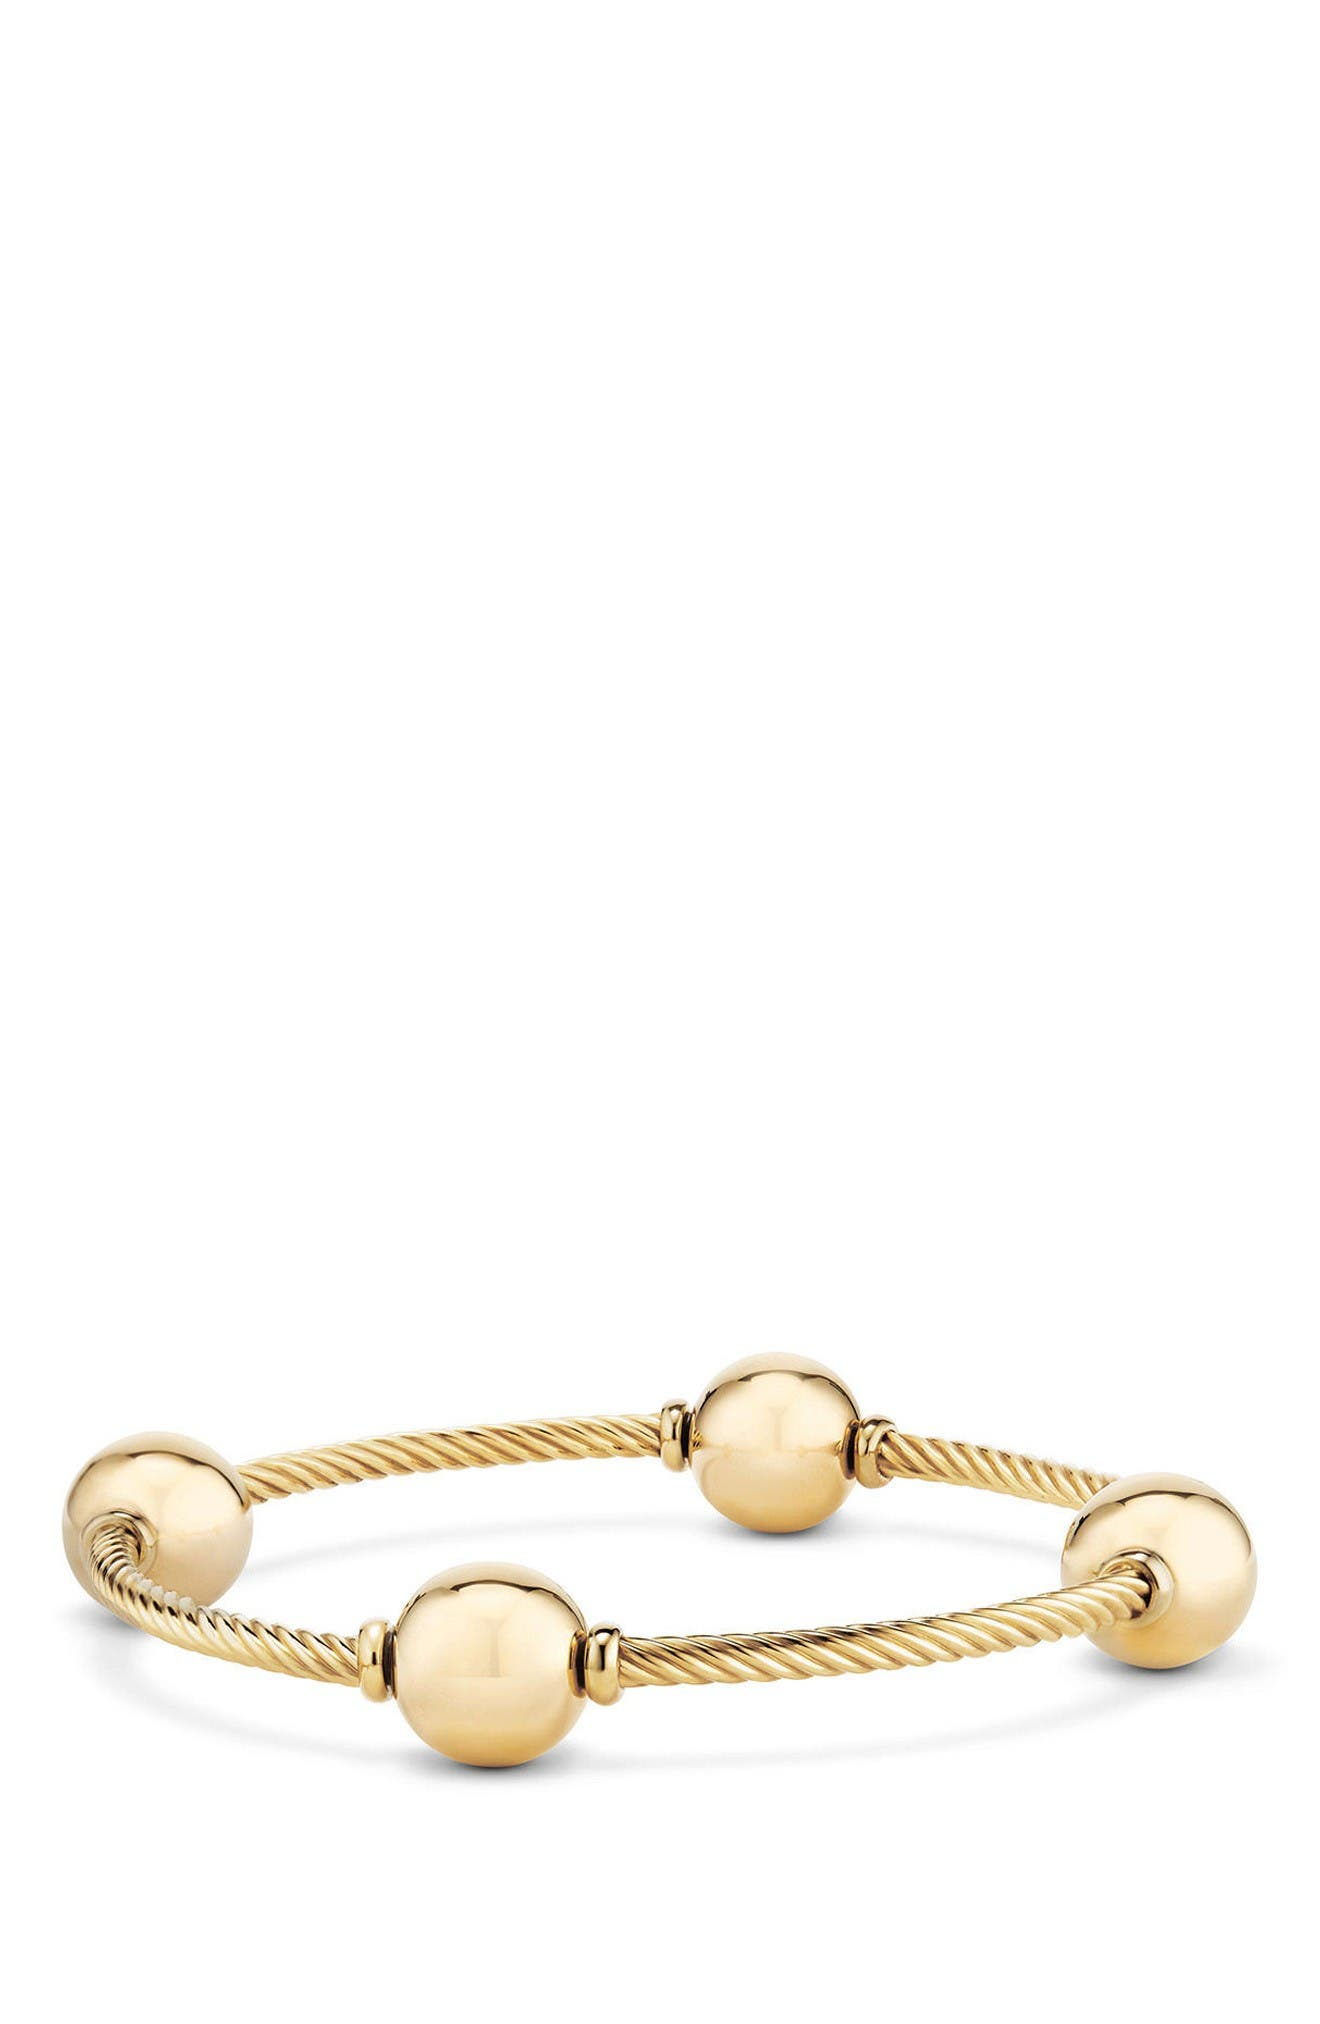 Mustique Four Station Bangle Bracelet in 18K Gold,                         Main,                         color, Yellow Gold/ Gold Dome